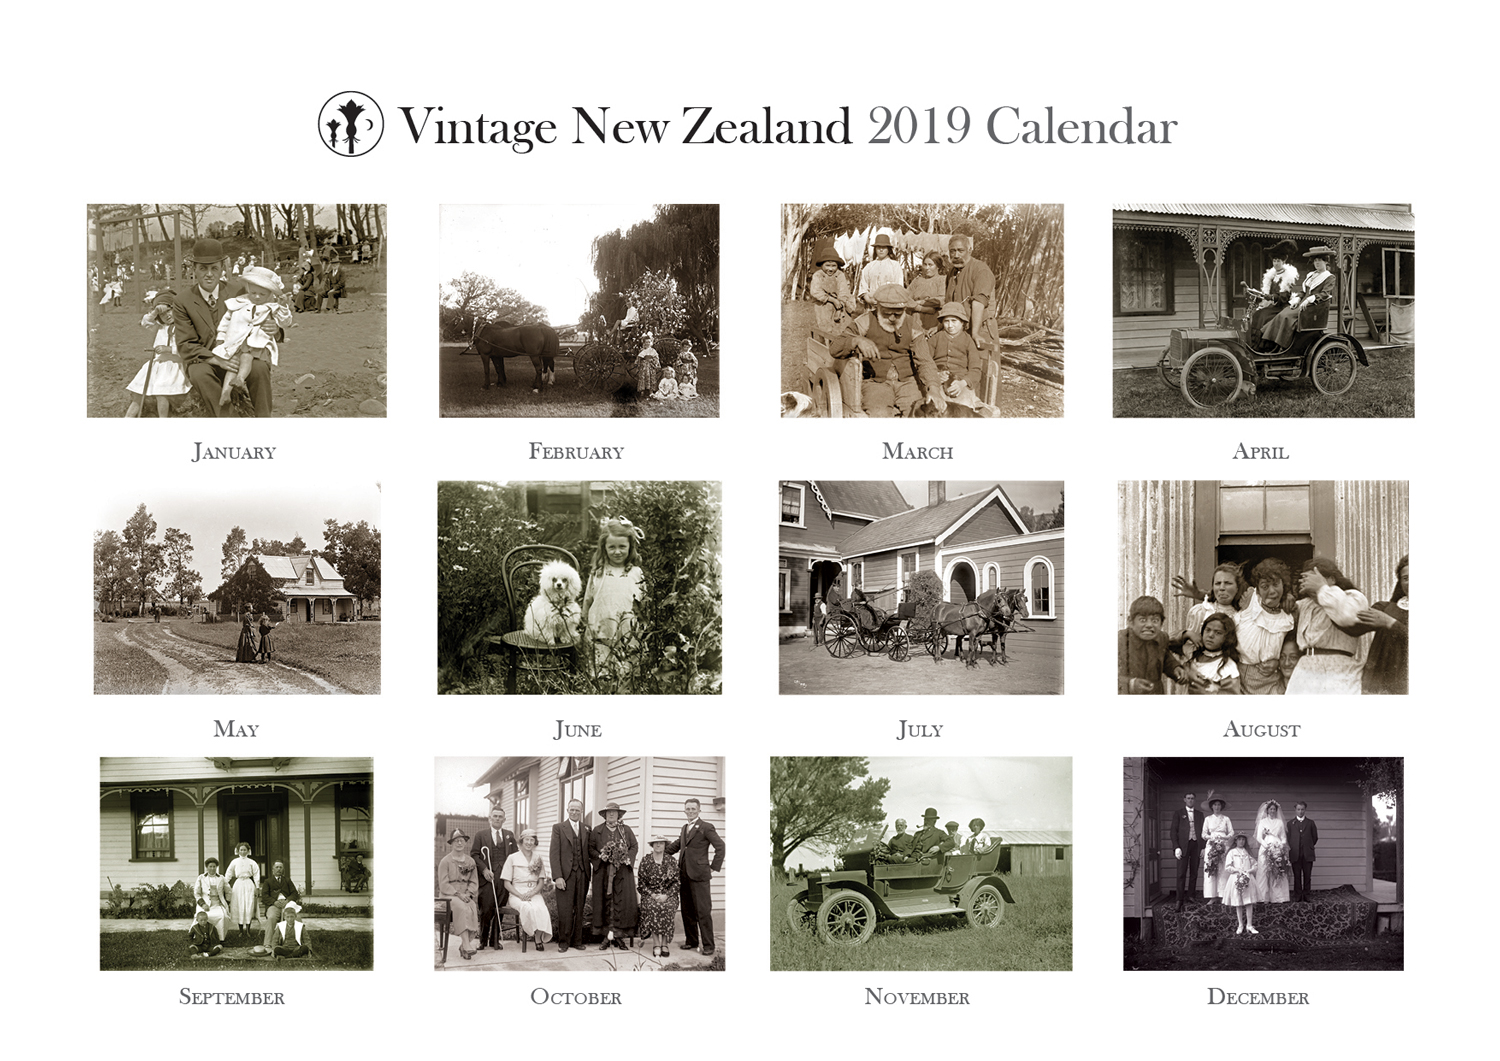 Vintage New Zealand 2019 Calendar Back Cover